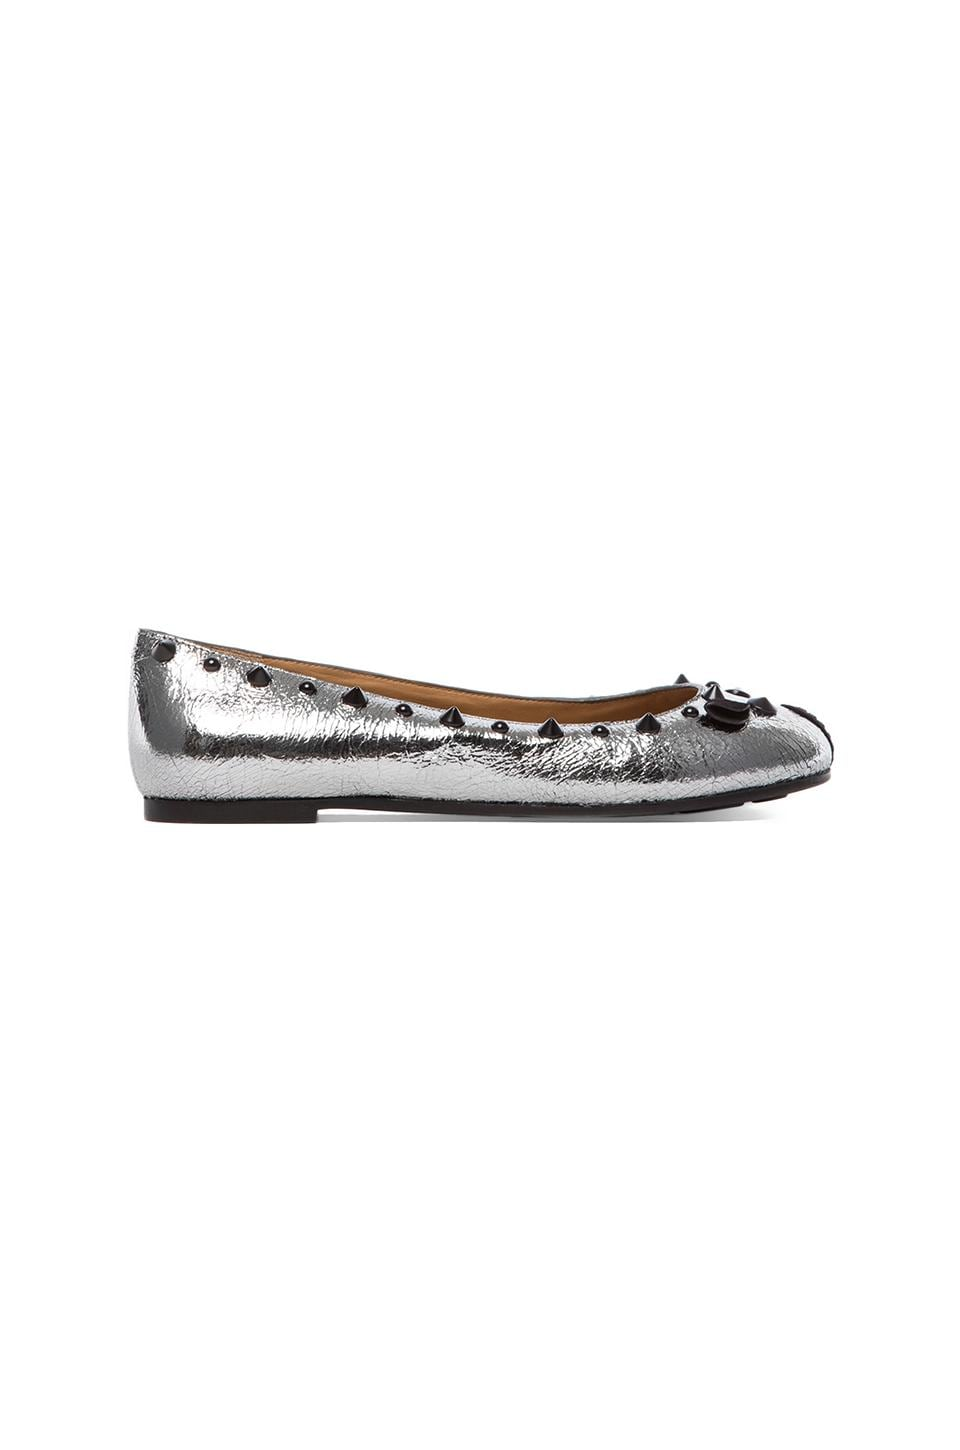 Marc by Marc Jacobs Ballerina in Gunmetal